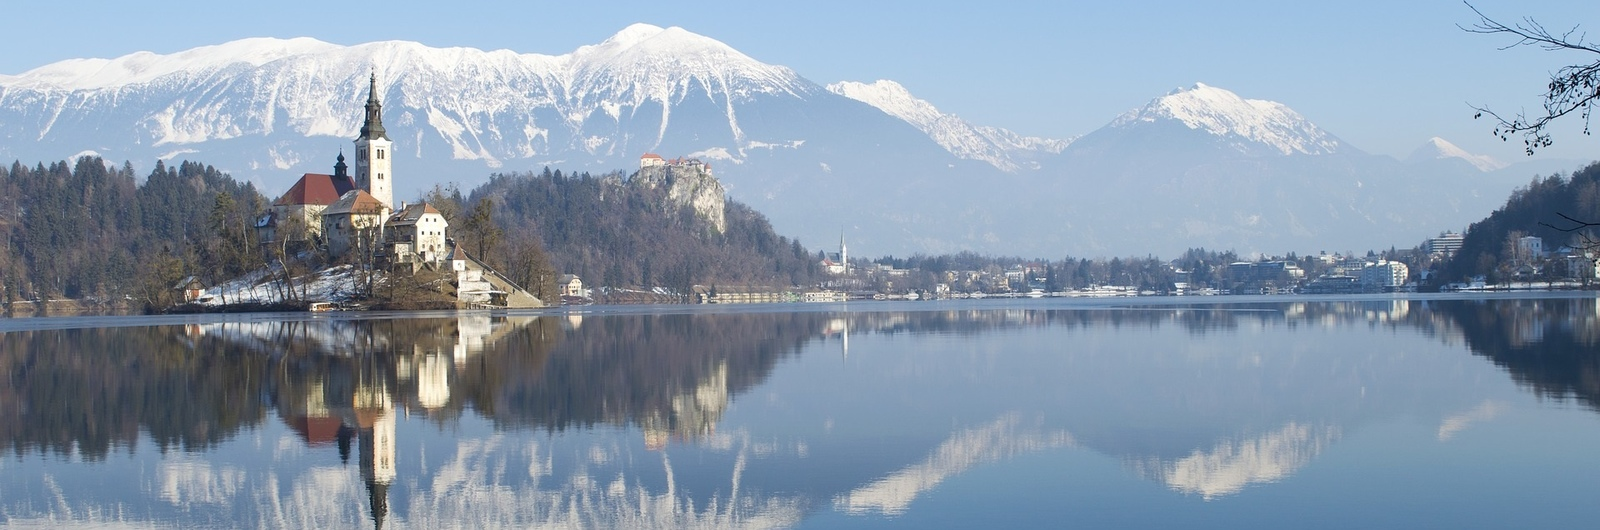 bled city header